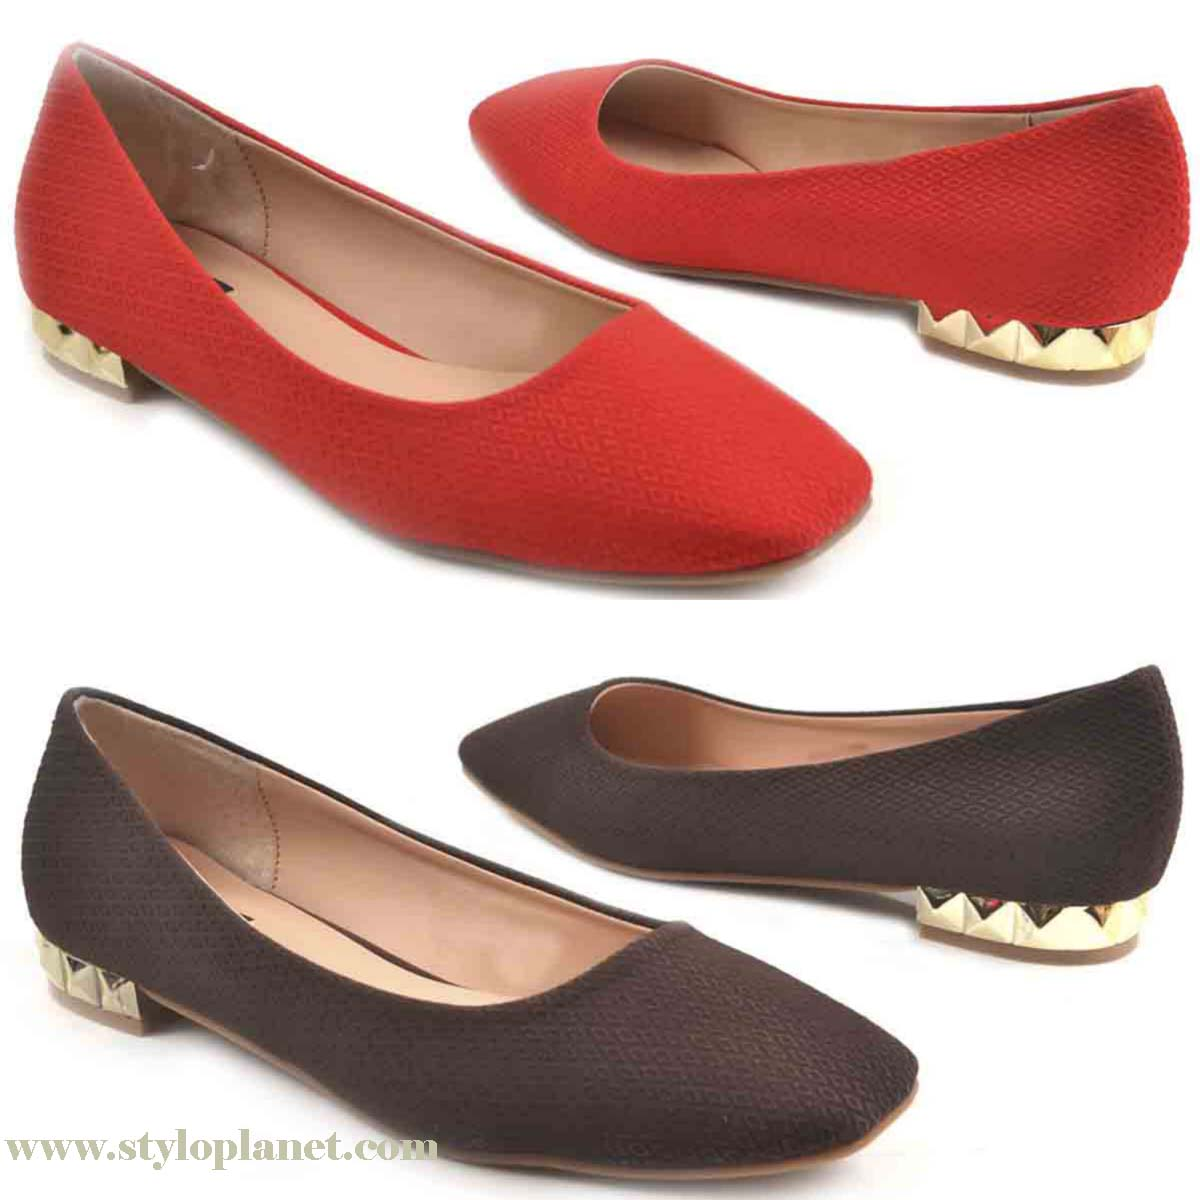 metro-shoes-stylish-winter-footwear-collection-2016-2017-10